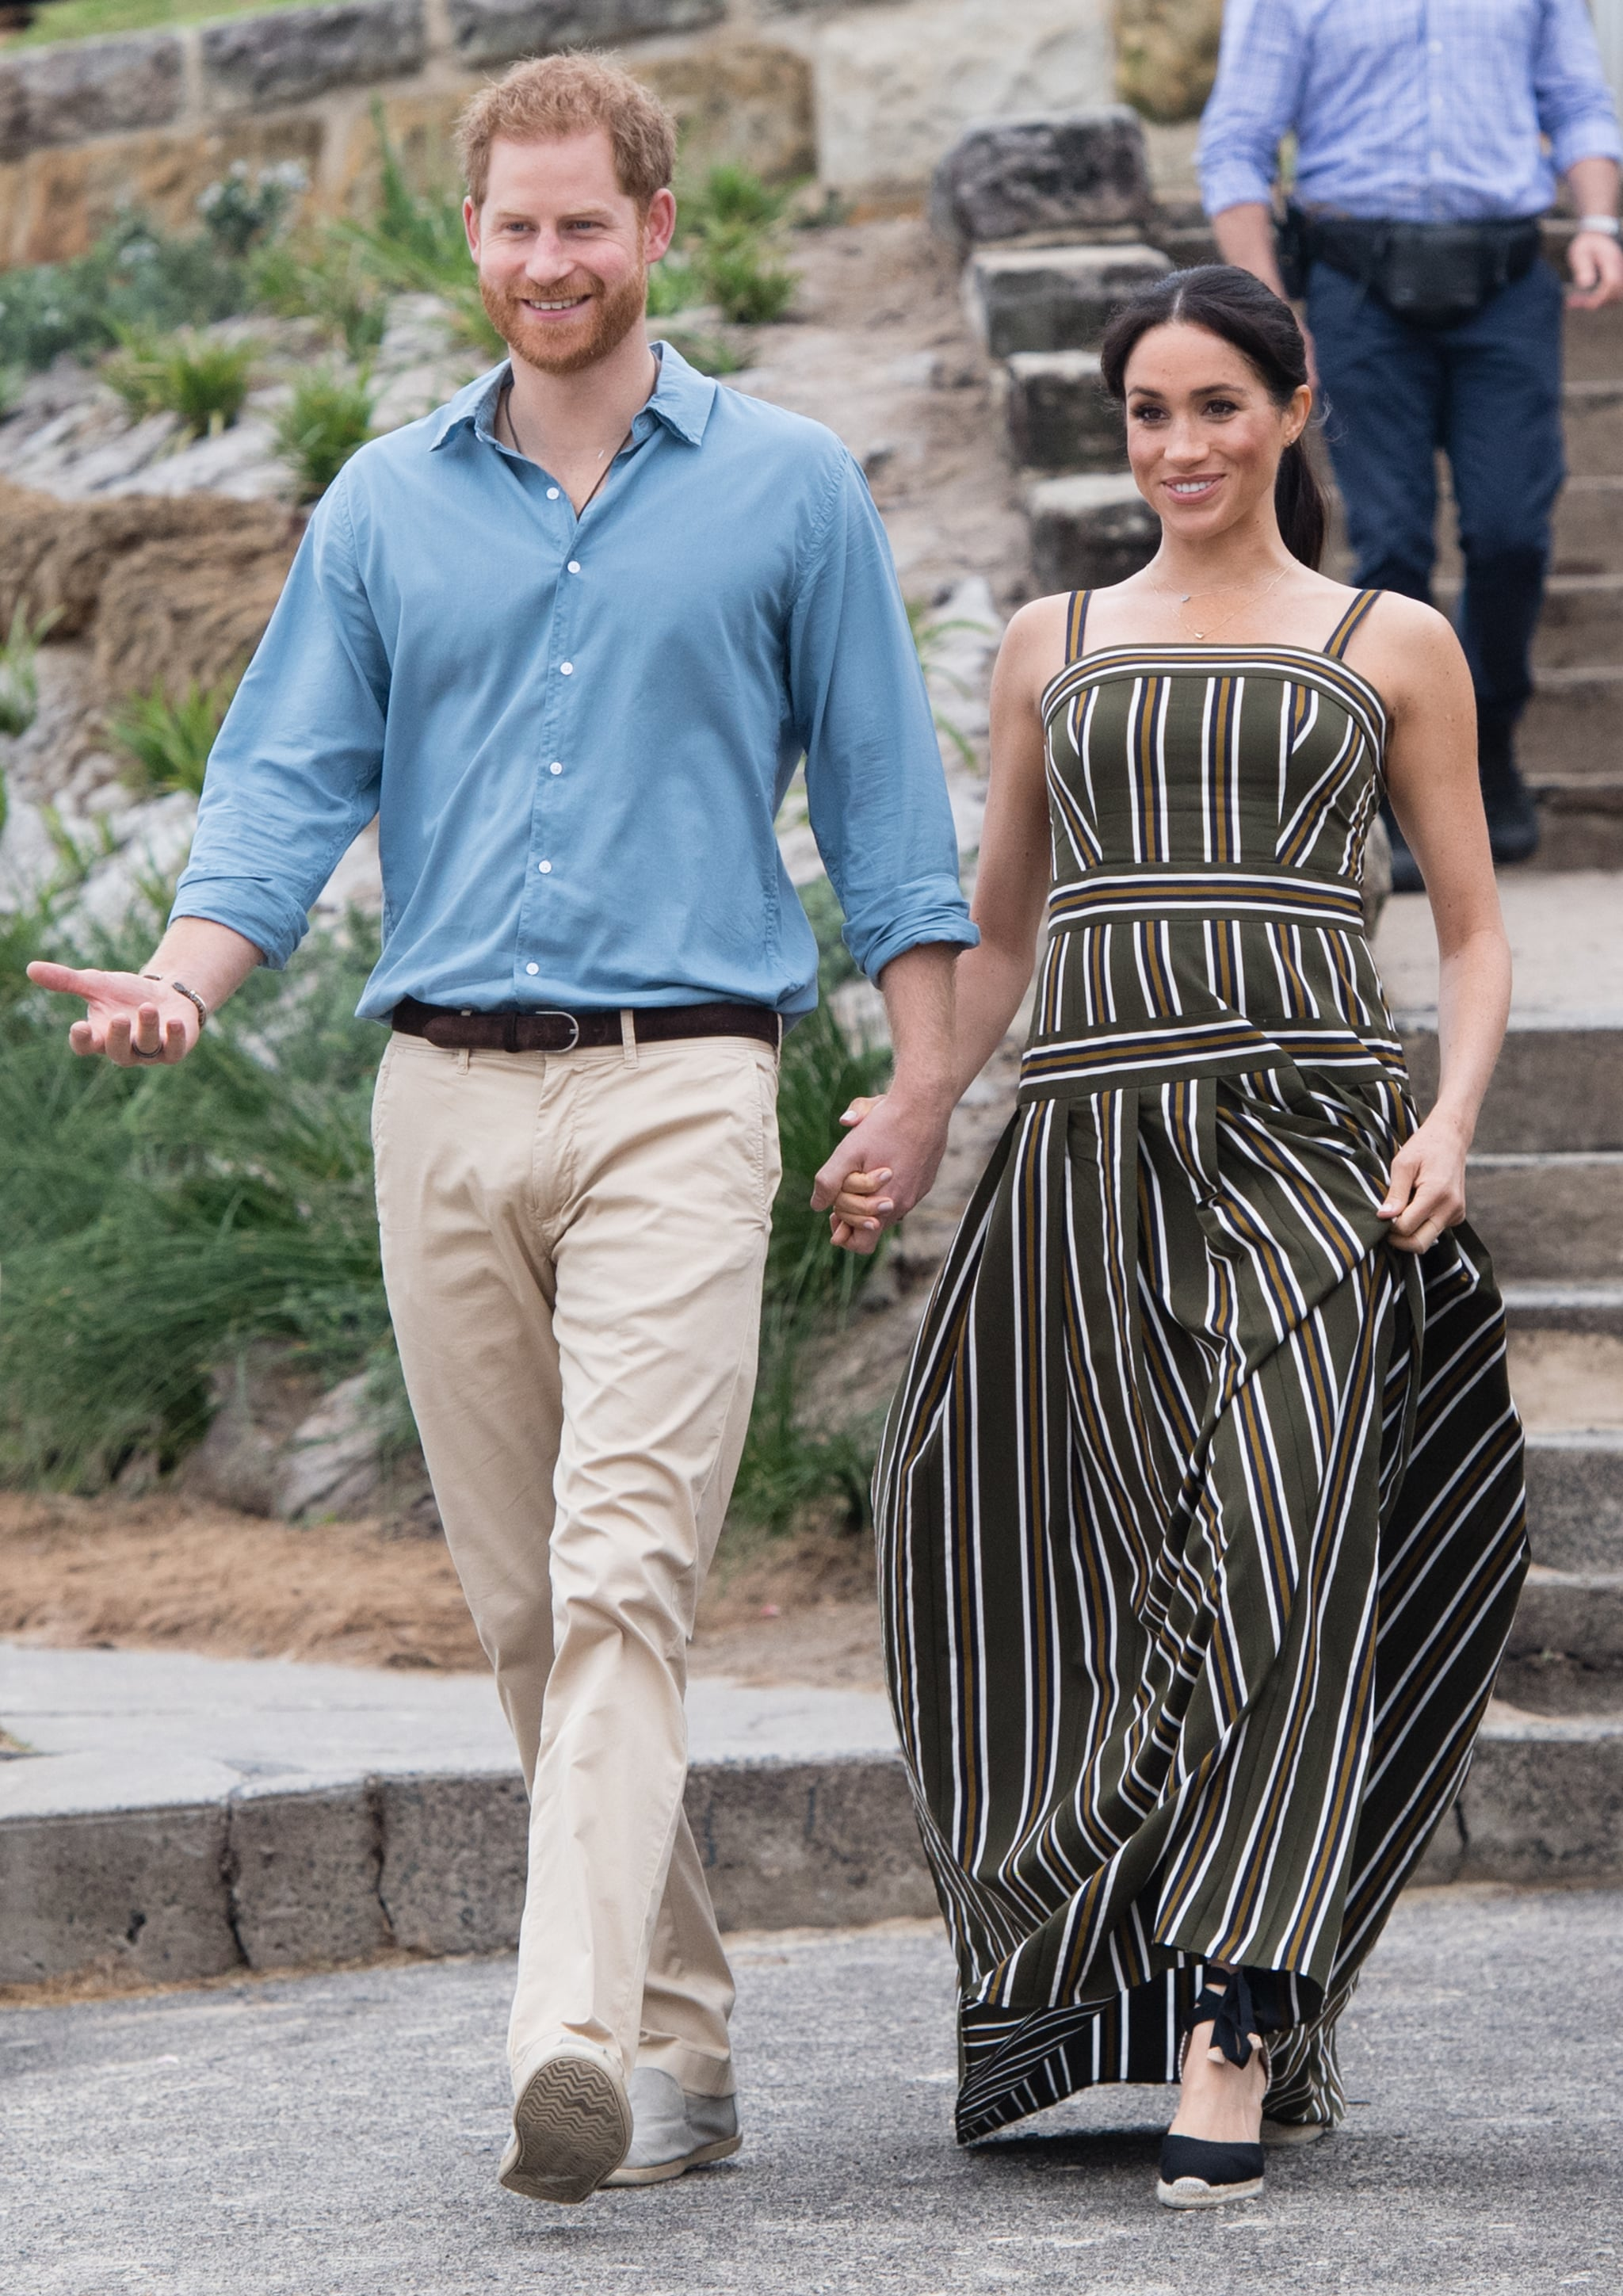 The Beach Dress From Beach Dresses To Ballgowns Meghan Markle S Maternity Style Was Totally On Point Popsugar Fashion Photo 160